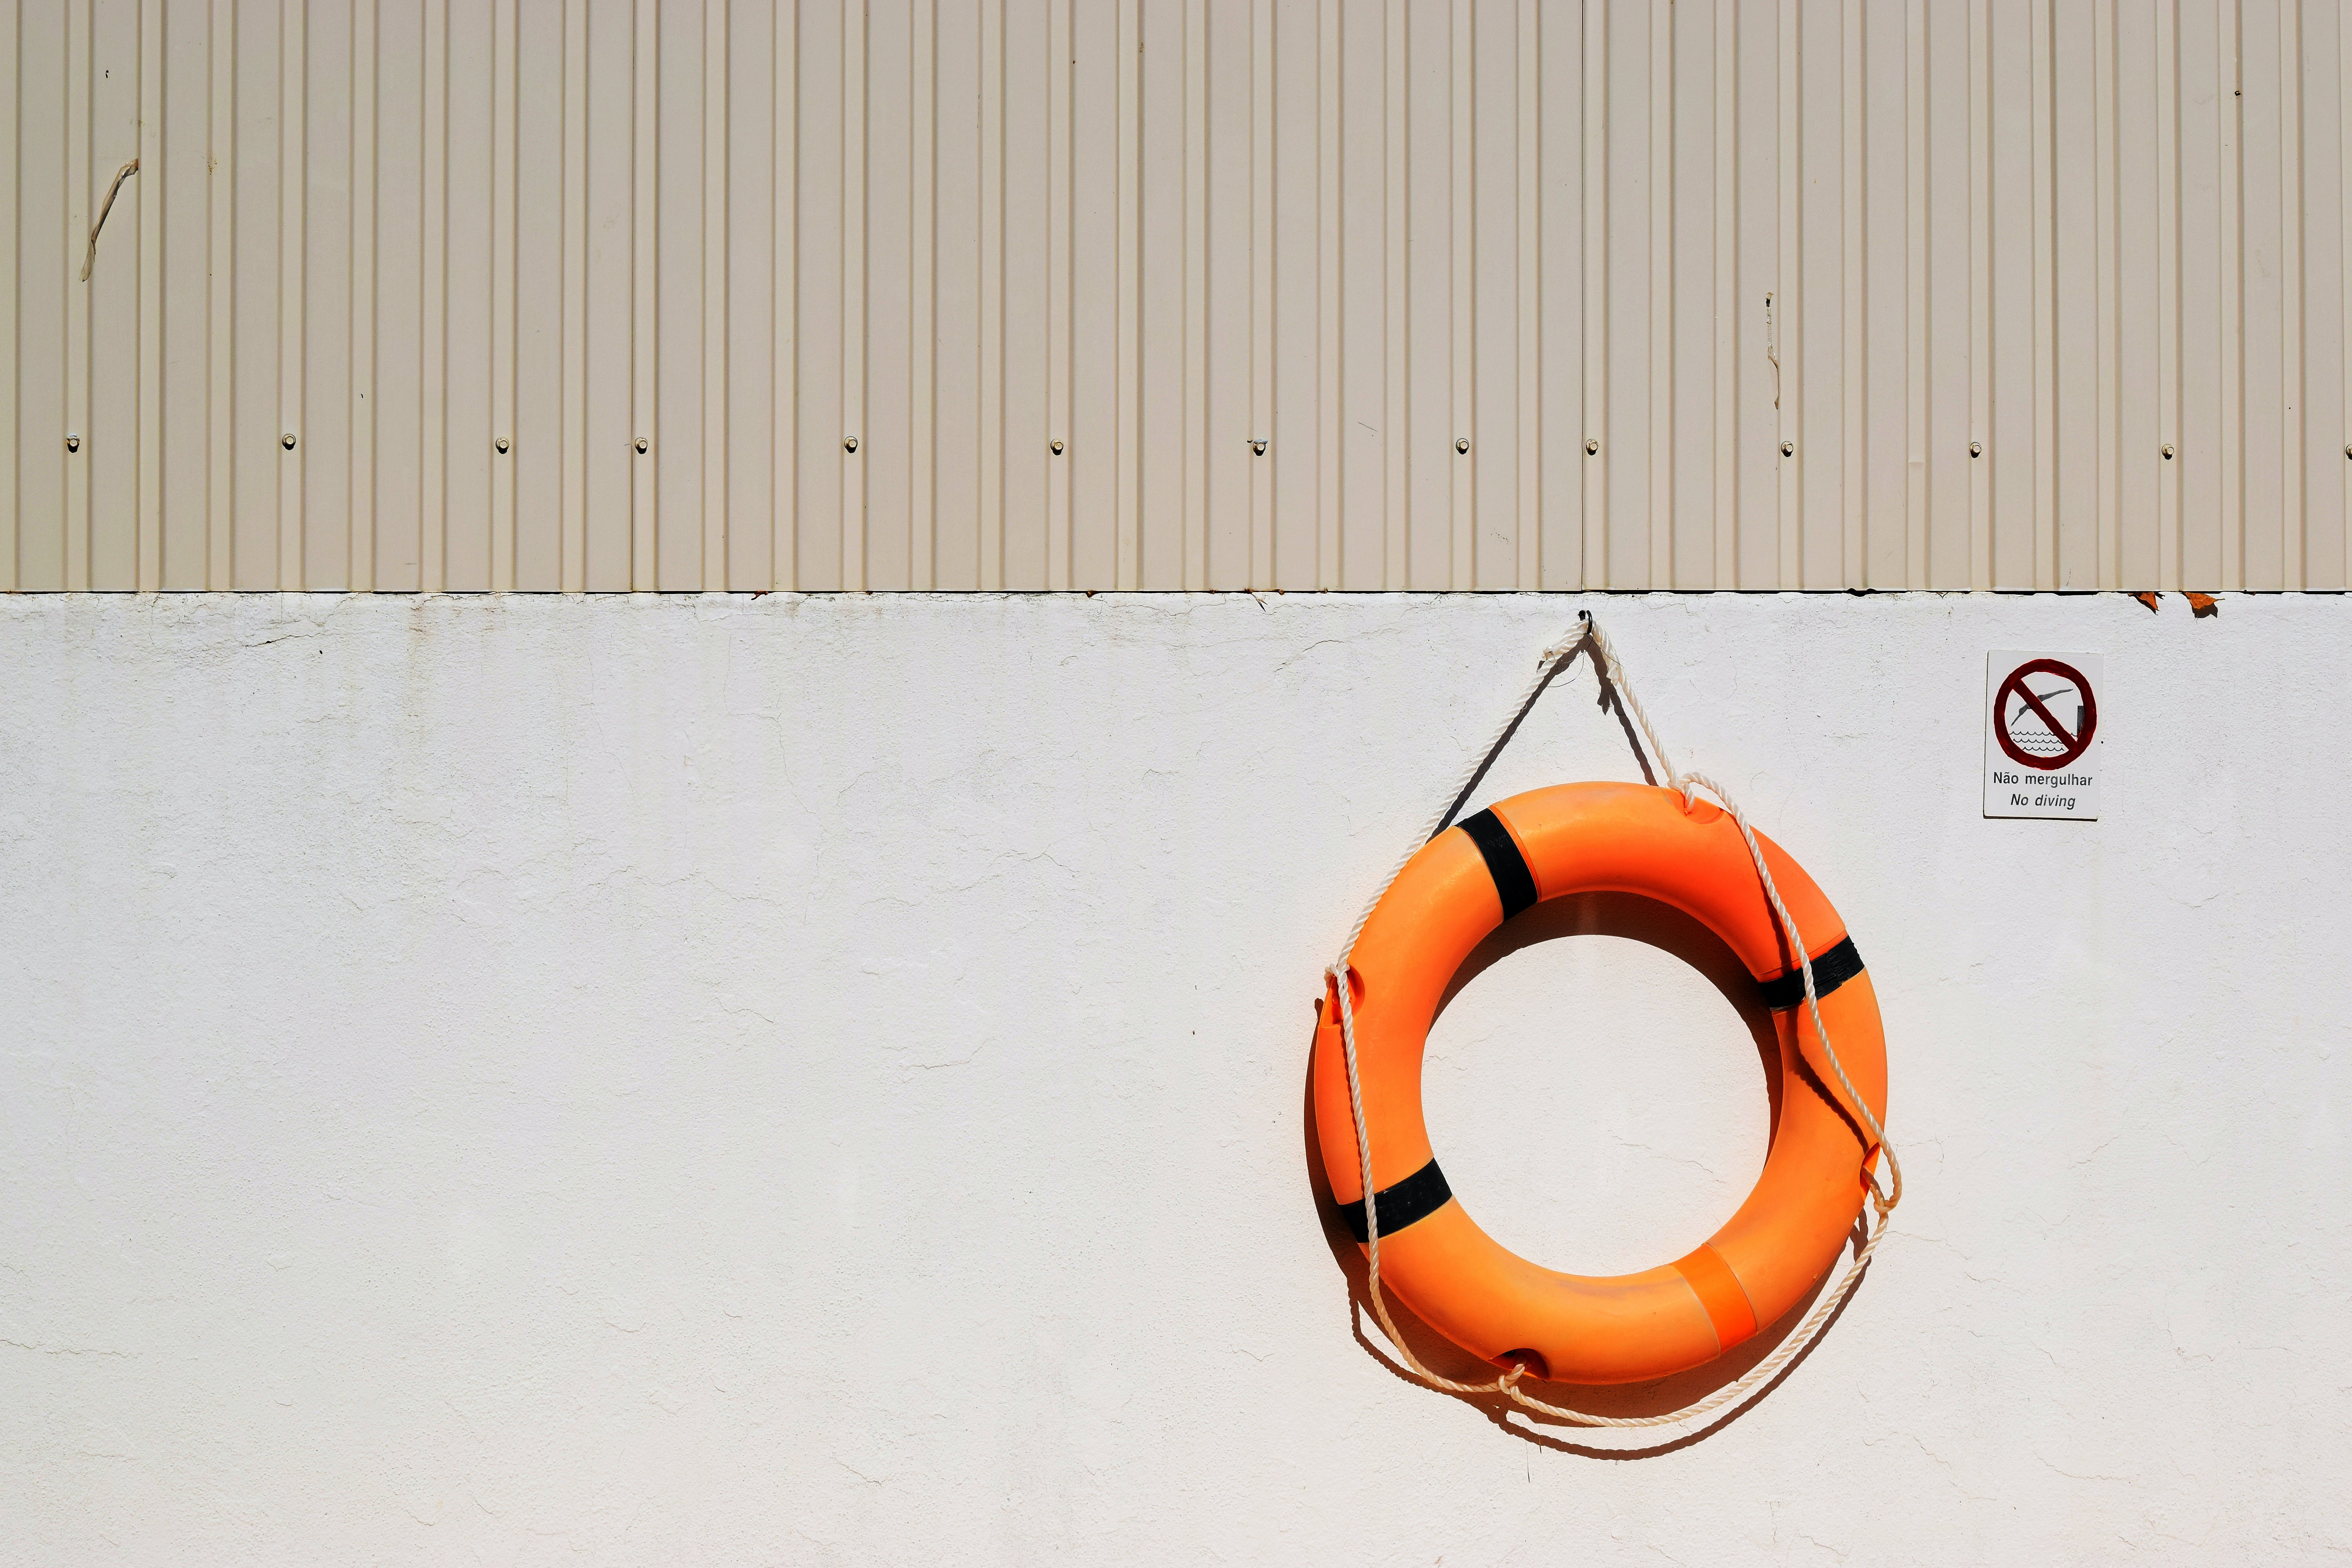 A lifebuoy hanging on a wall.